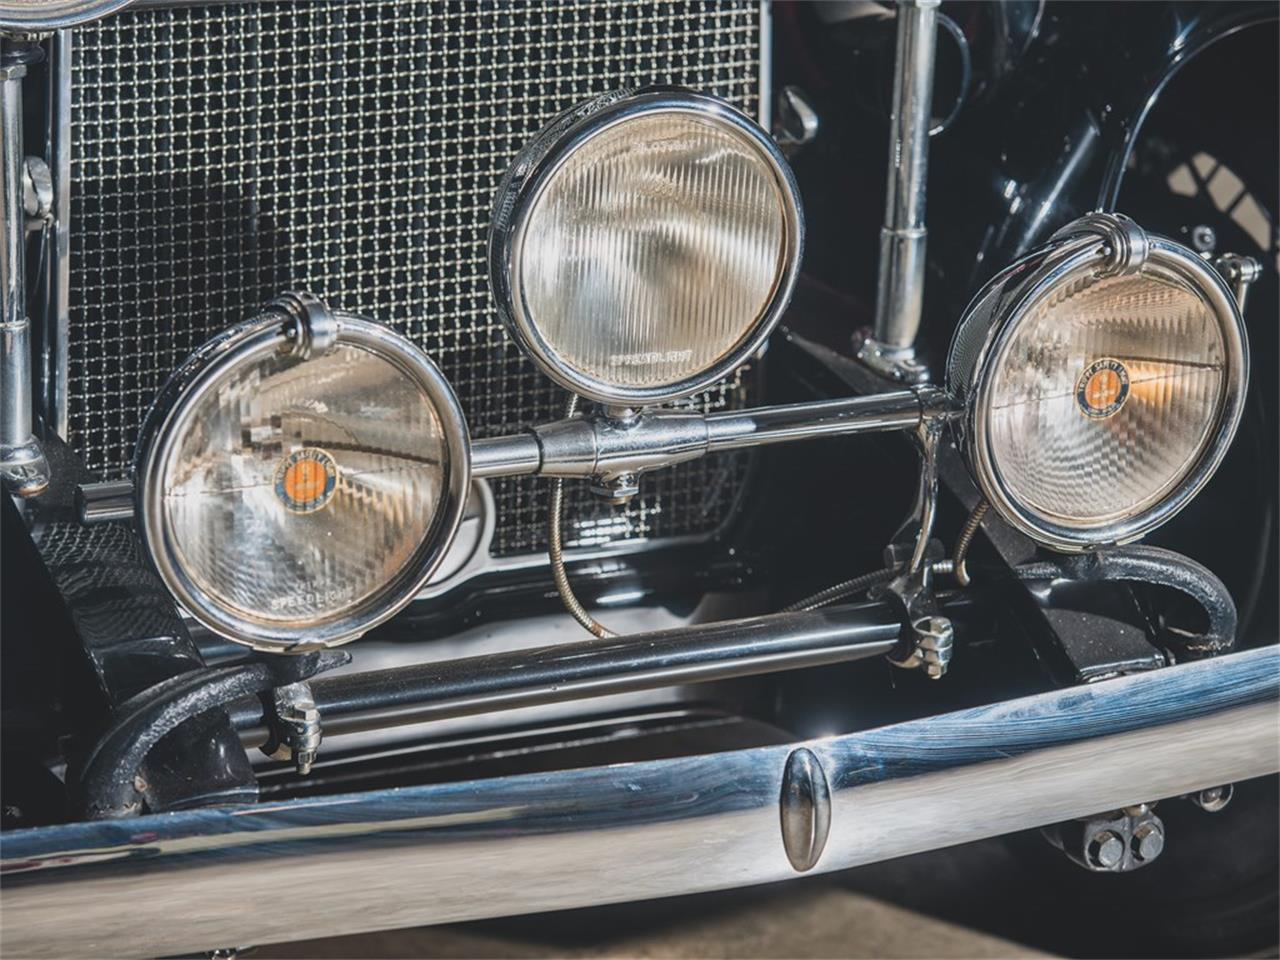 1931 LaSalle Roadster for sale in St Louis, MO – photo 9